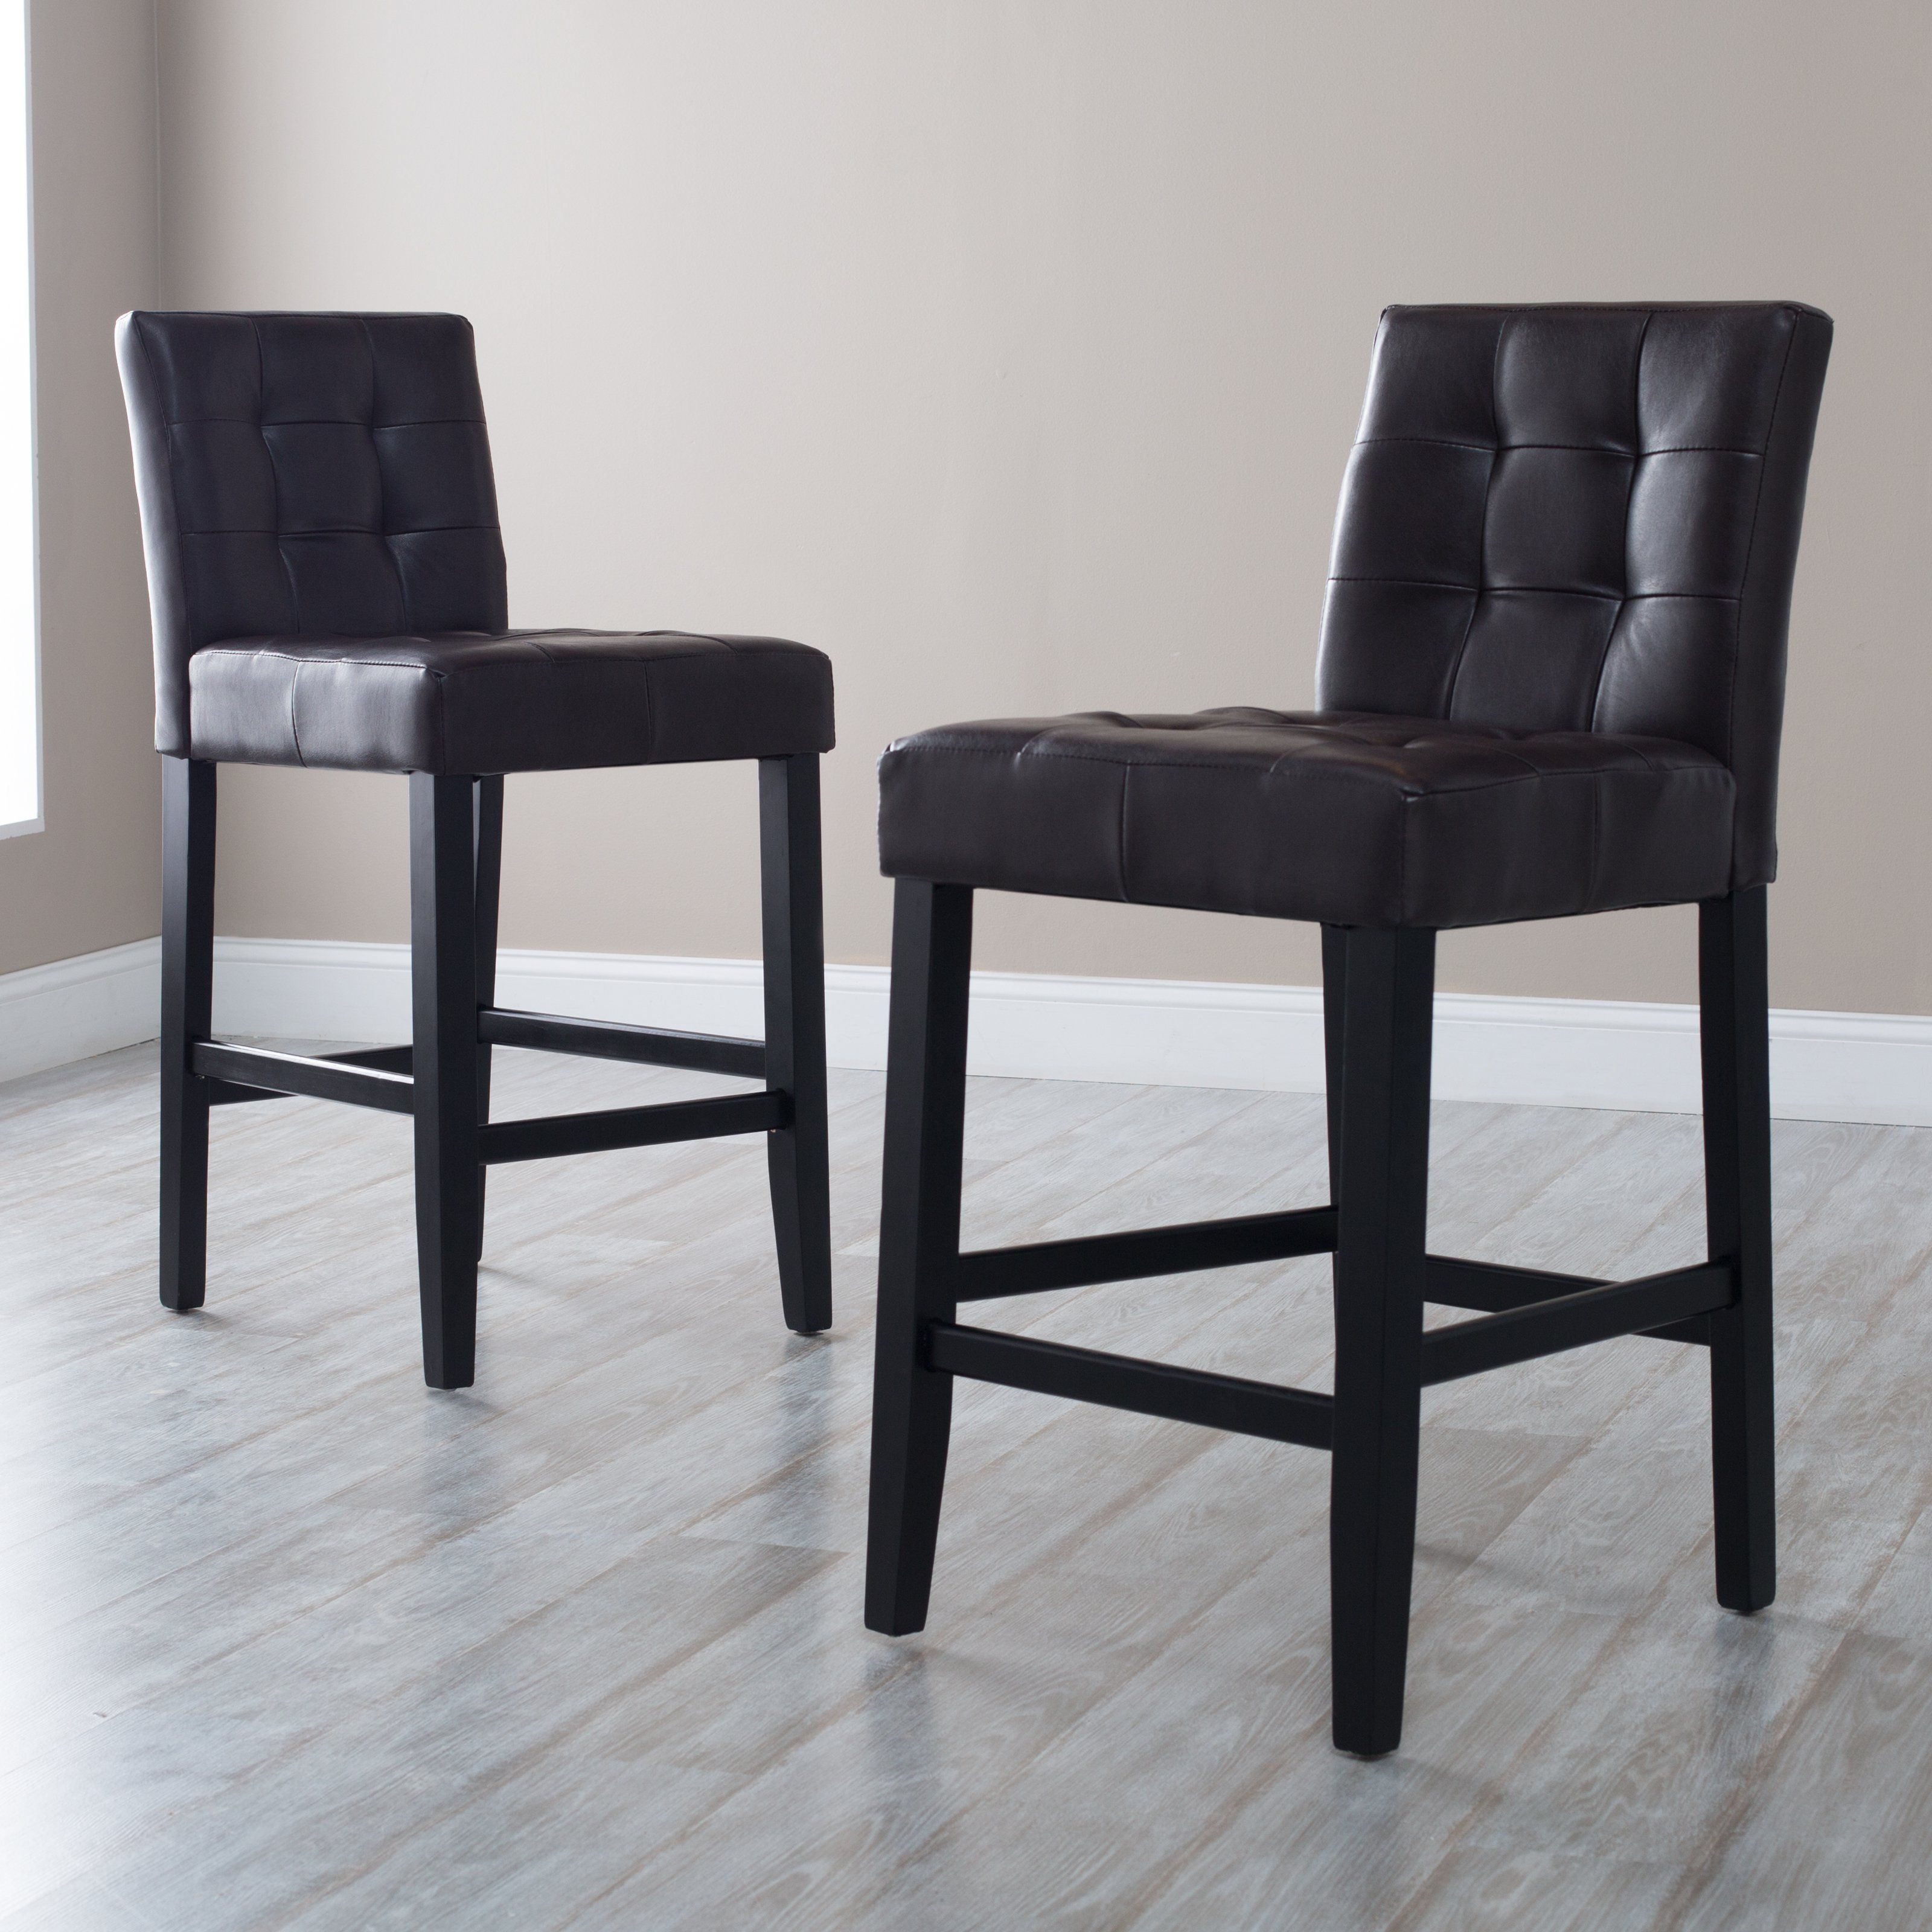 Fantastic Have To Have It Martha Brown Bonded Leather Bar Stool Andrewgaddart Wooden Chair Designs For Living Room Andrewgaddartcom